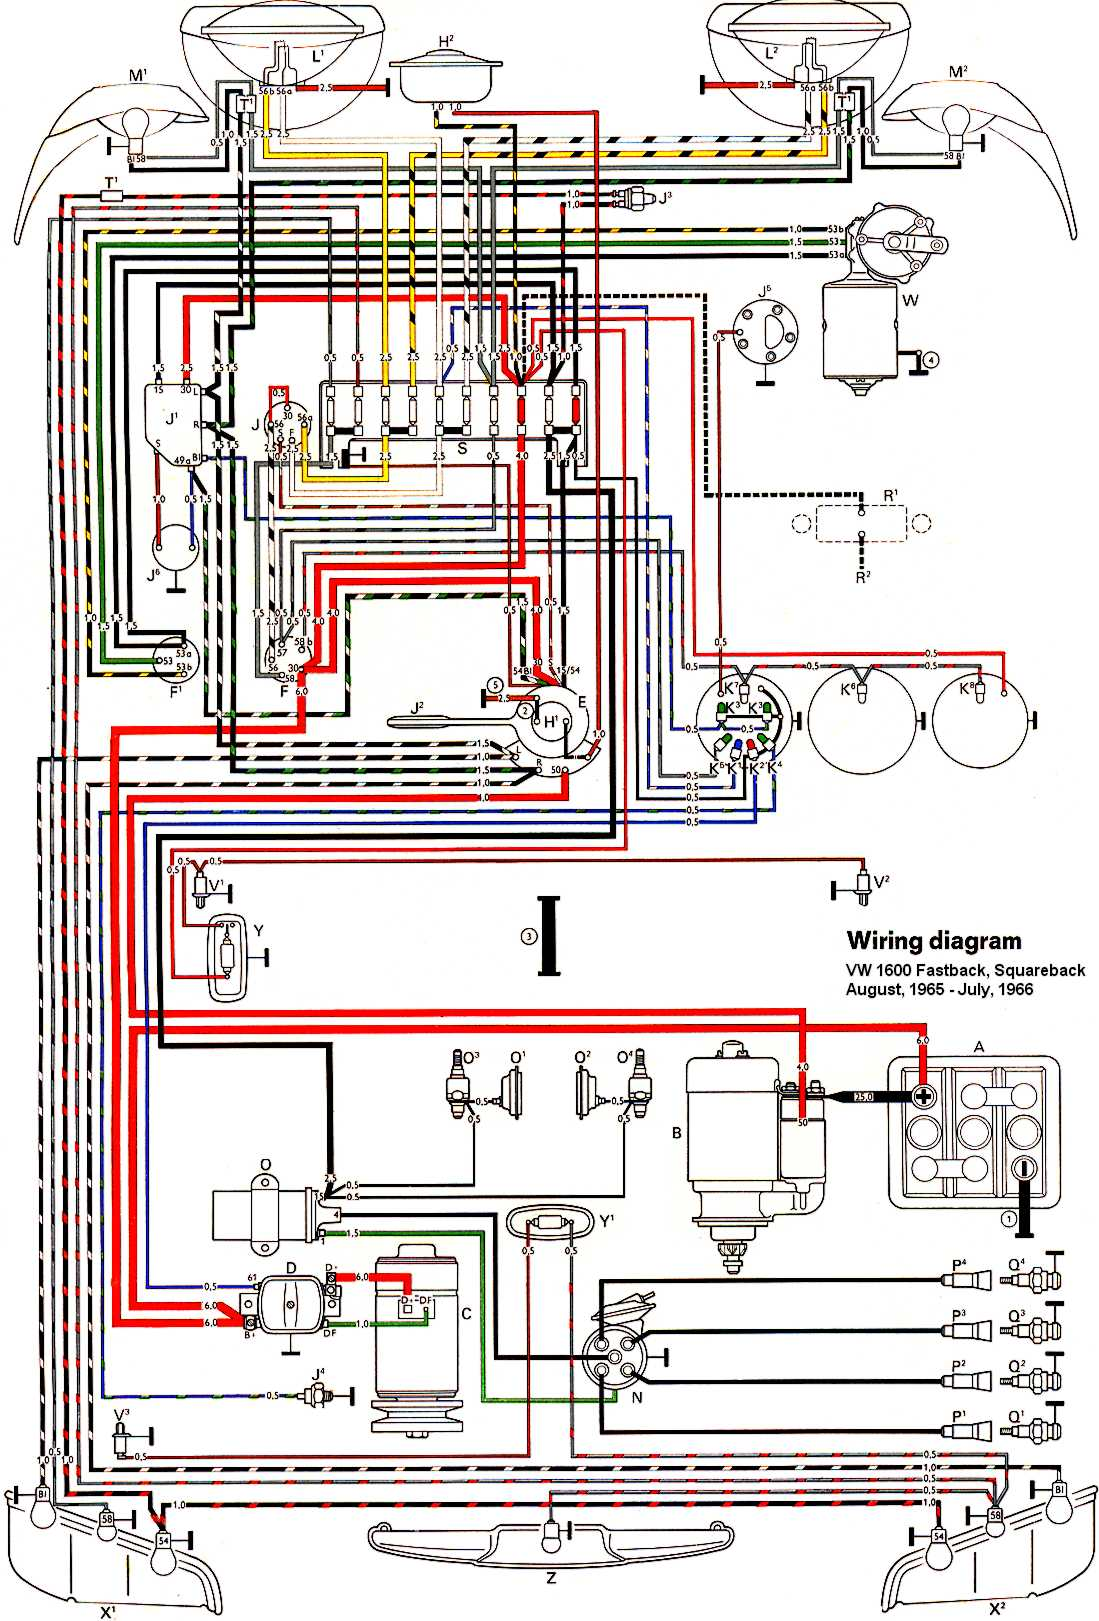 type3_1600_66 vw bus wiring diagram 1965 vw bus wiring diagram \u2022 wiring diagrams 1970 vw bug wiring diagram at alyssarenee.co